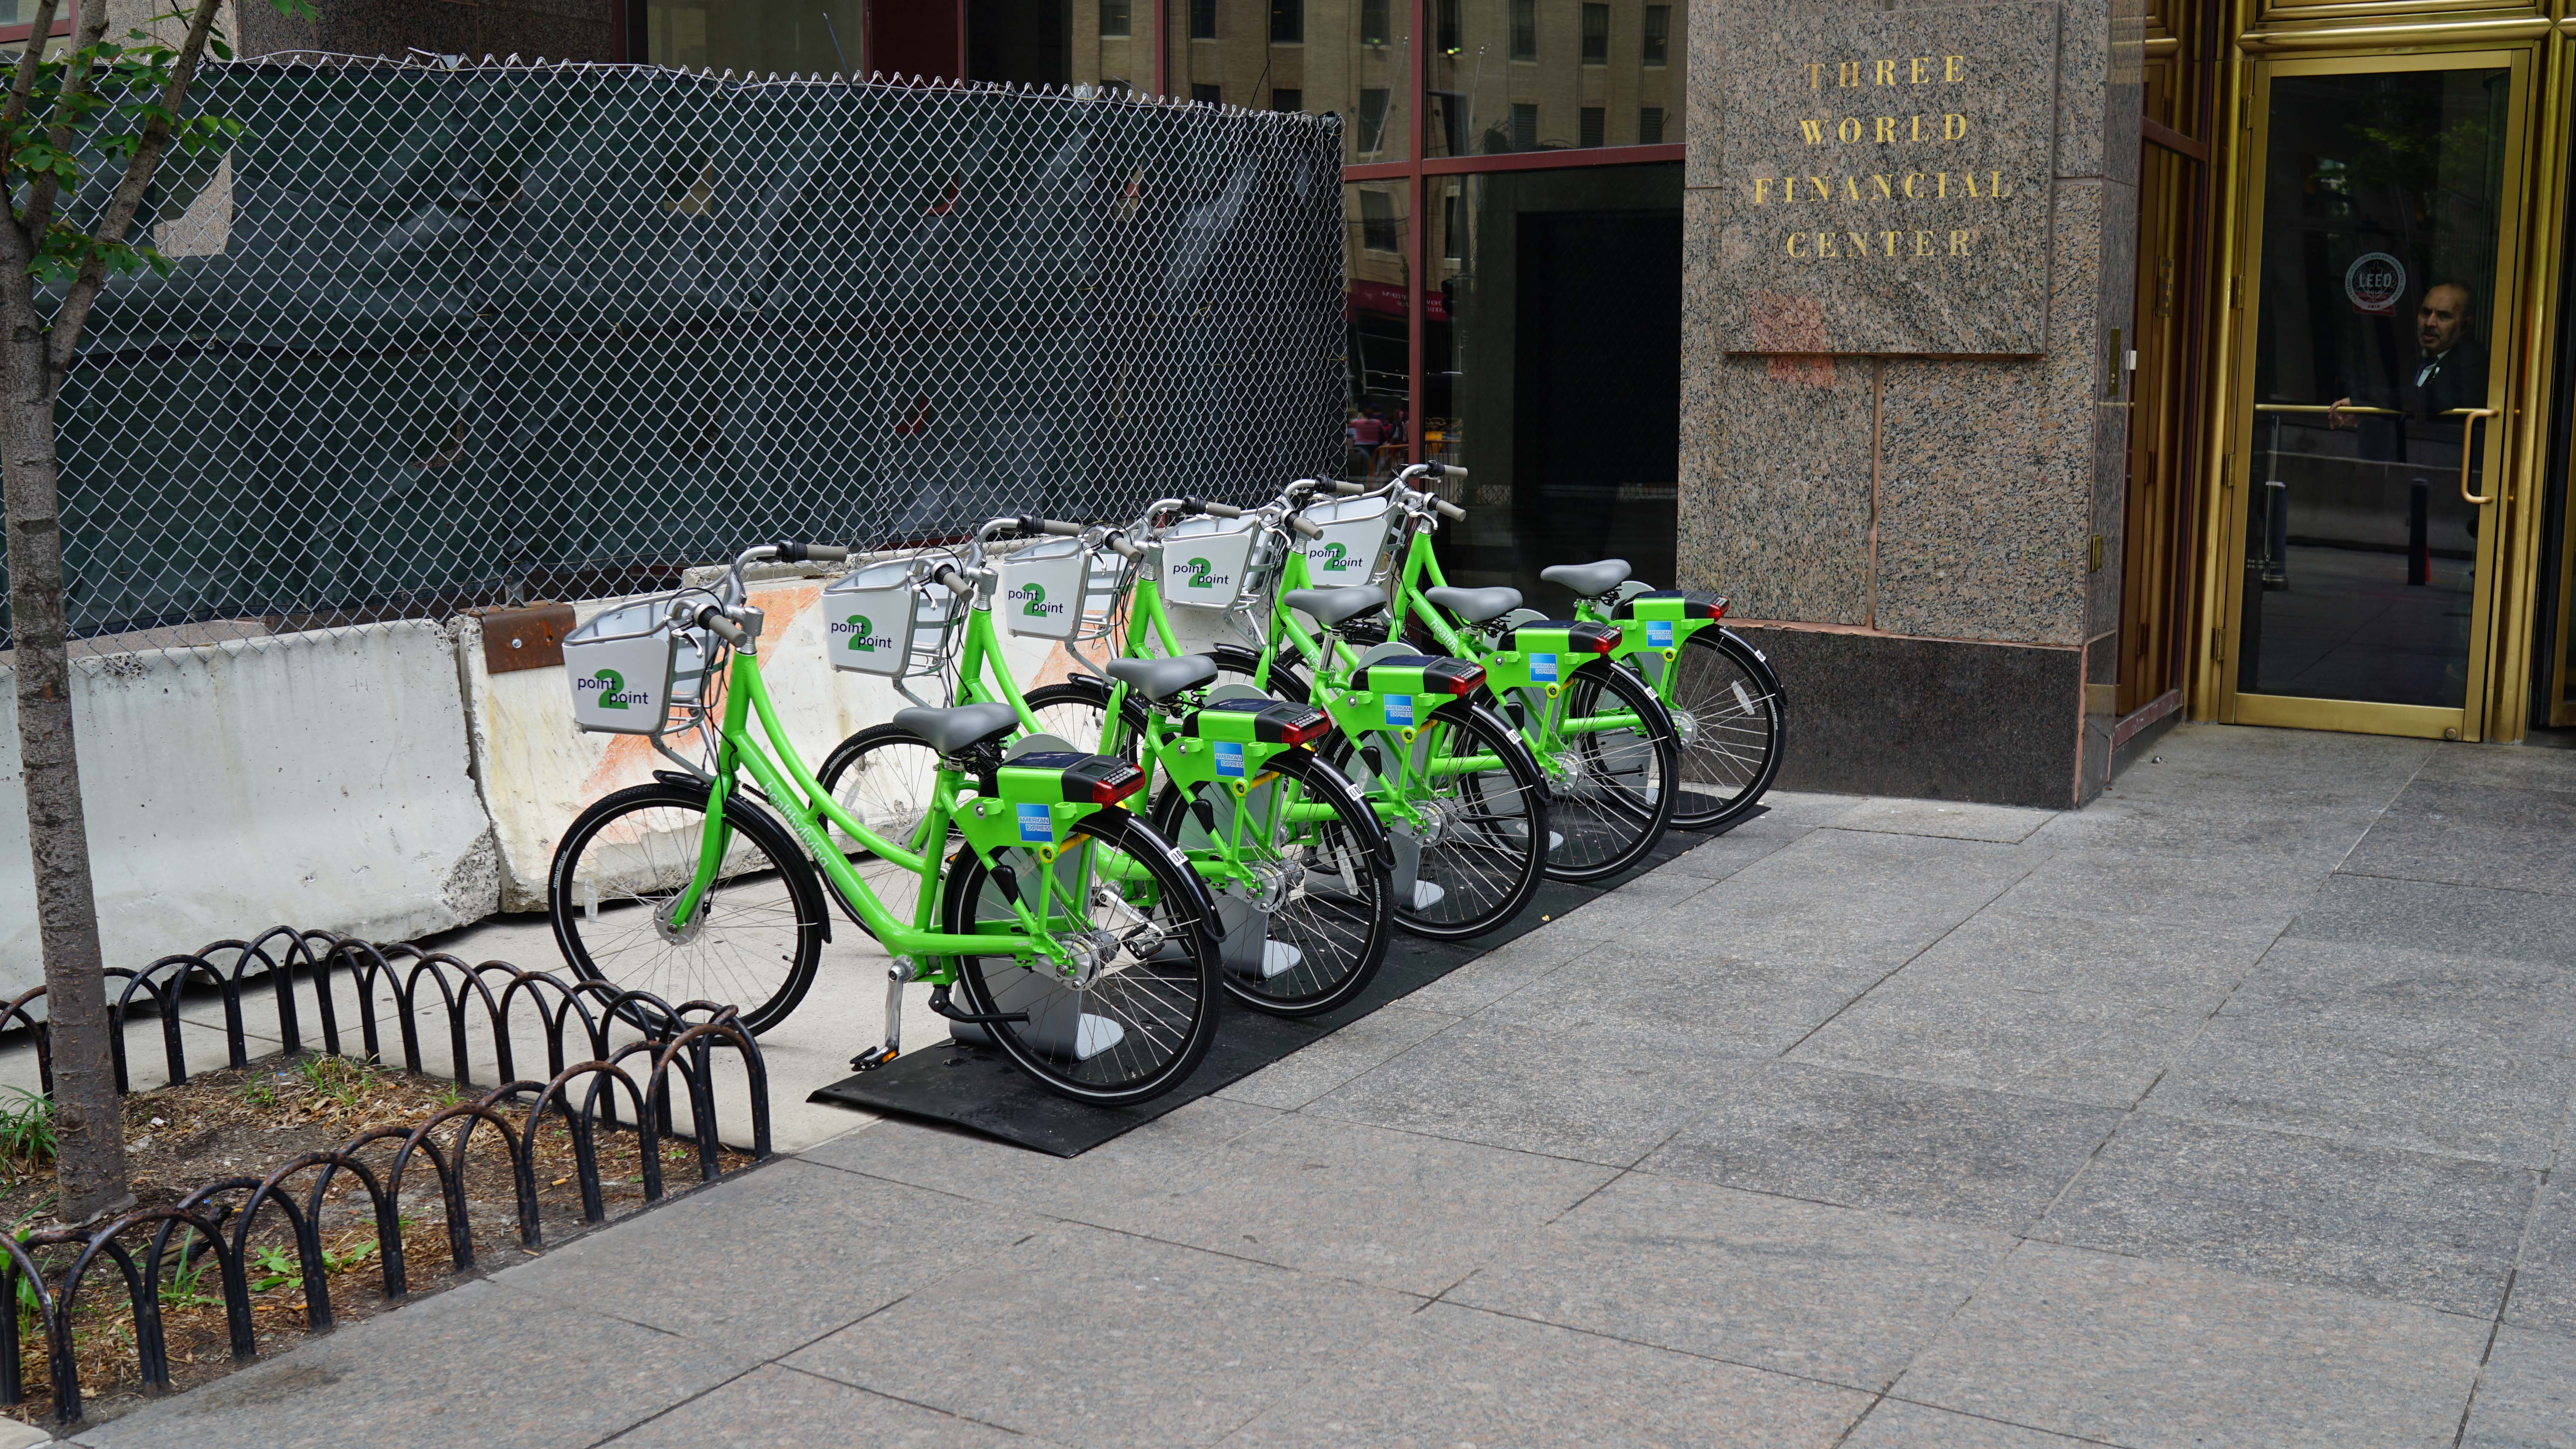 American Express point to point bikes